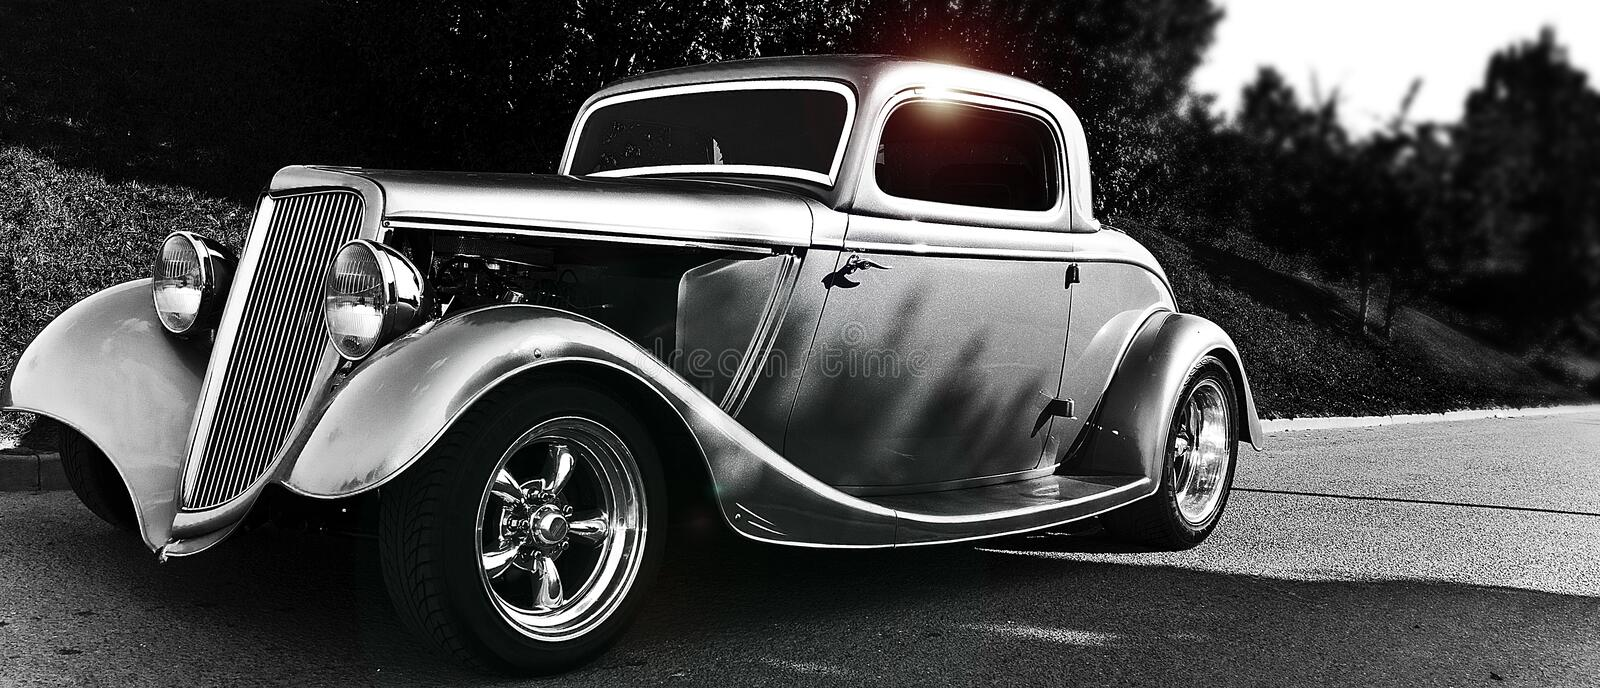 Hotrod royalty free stock photography